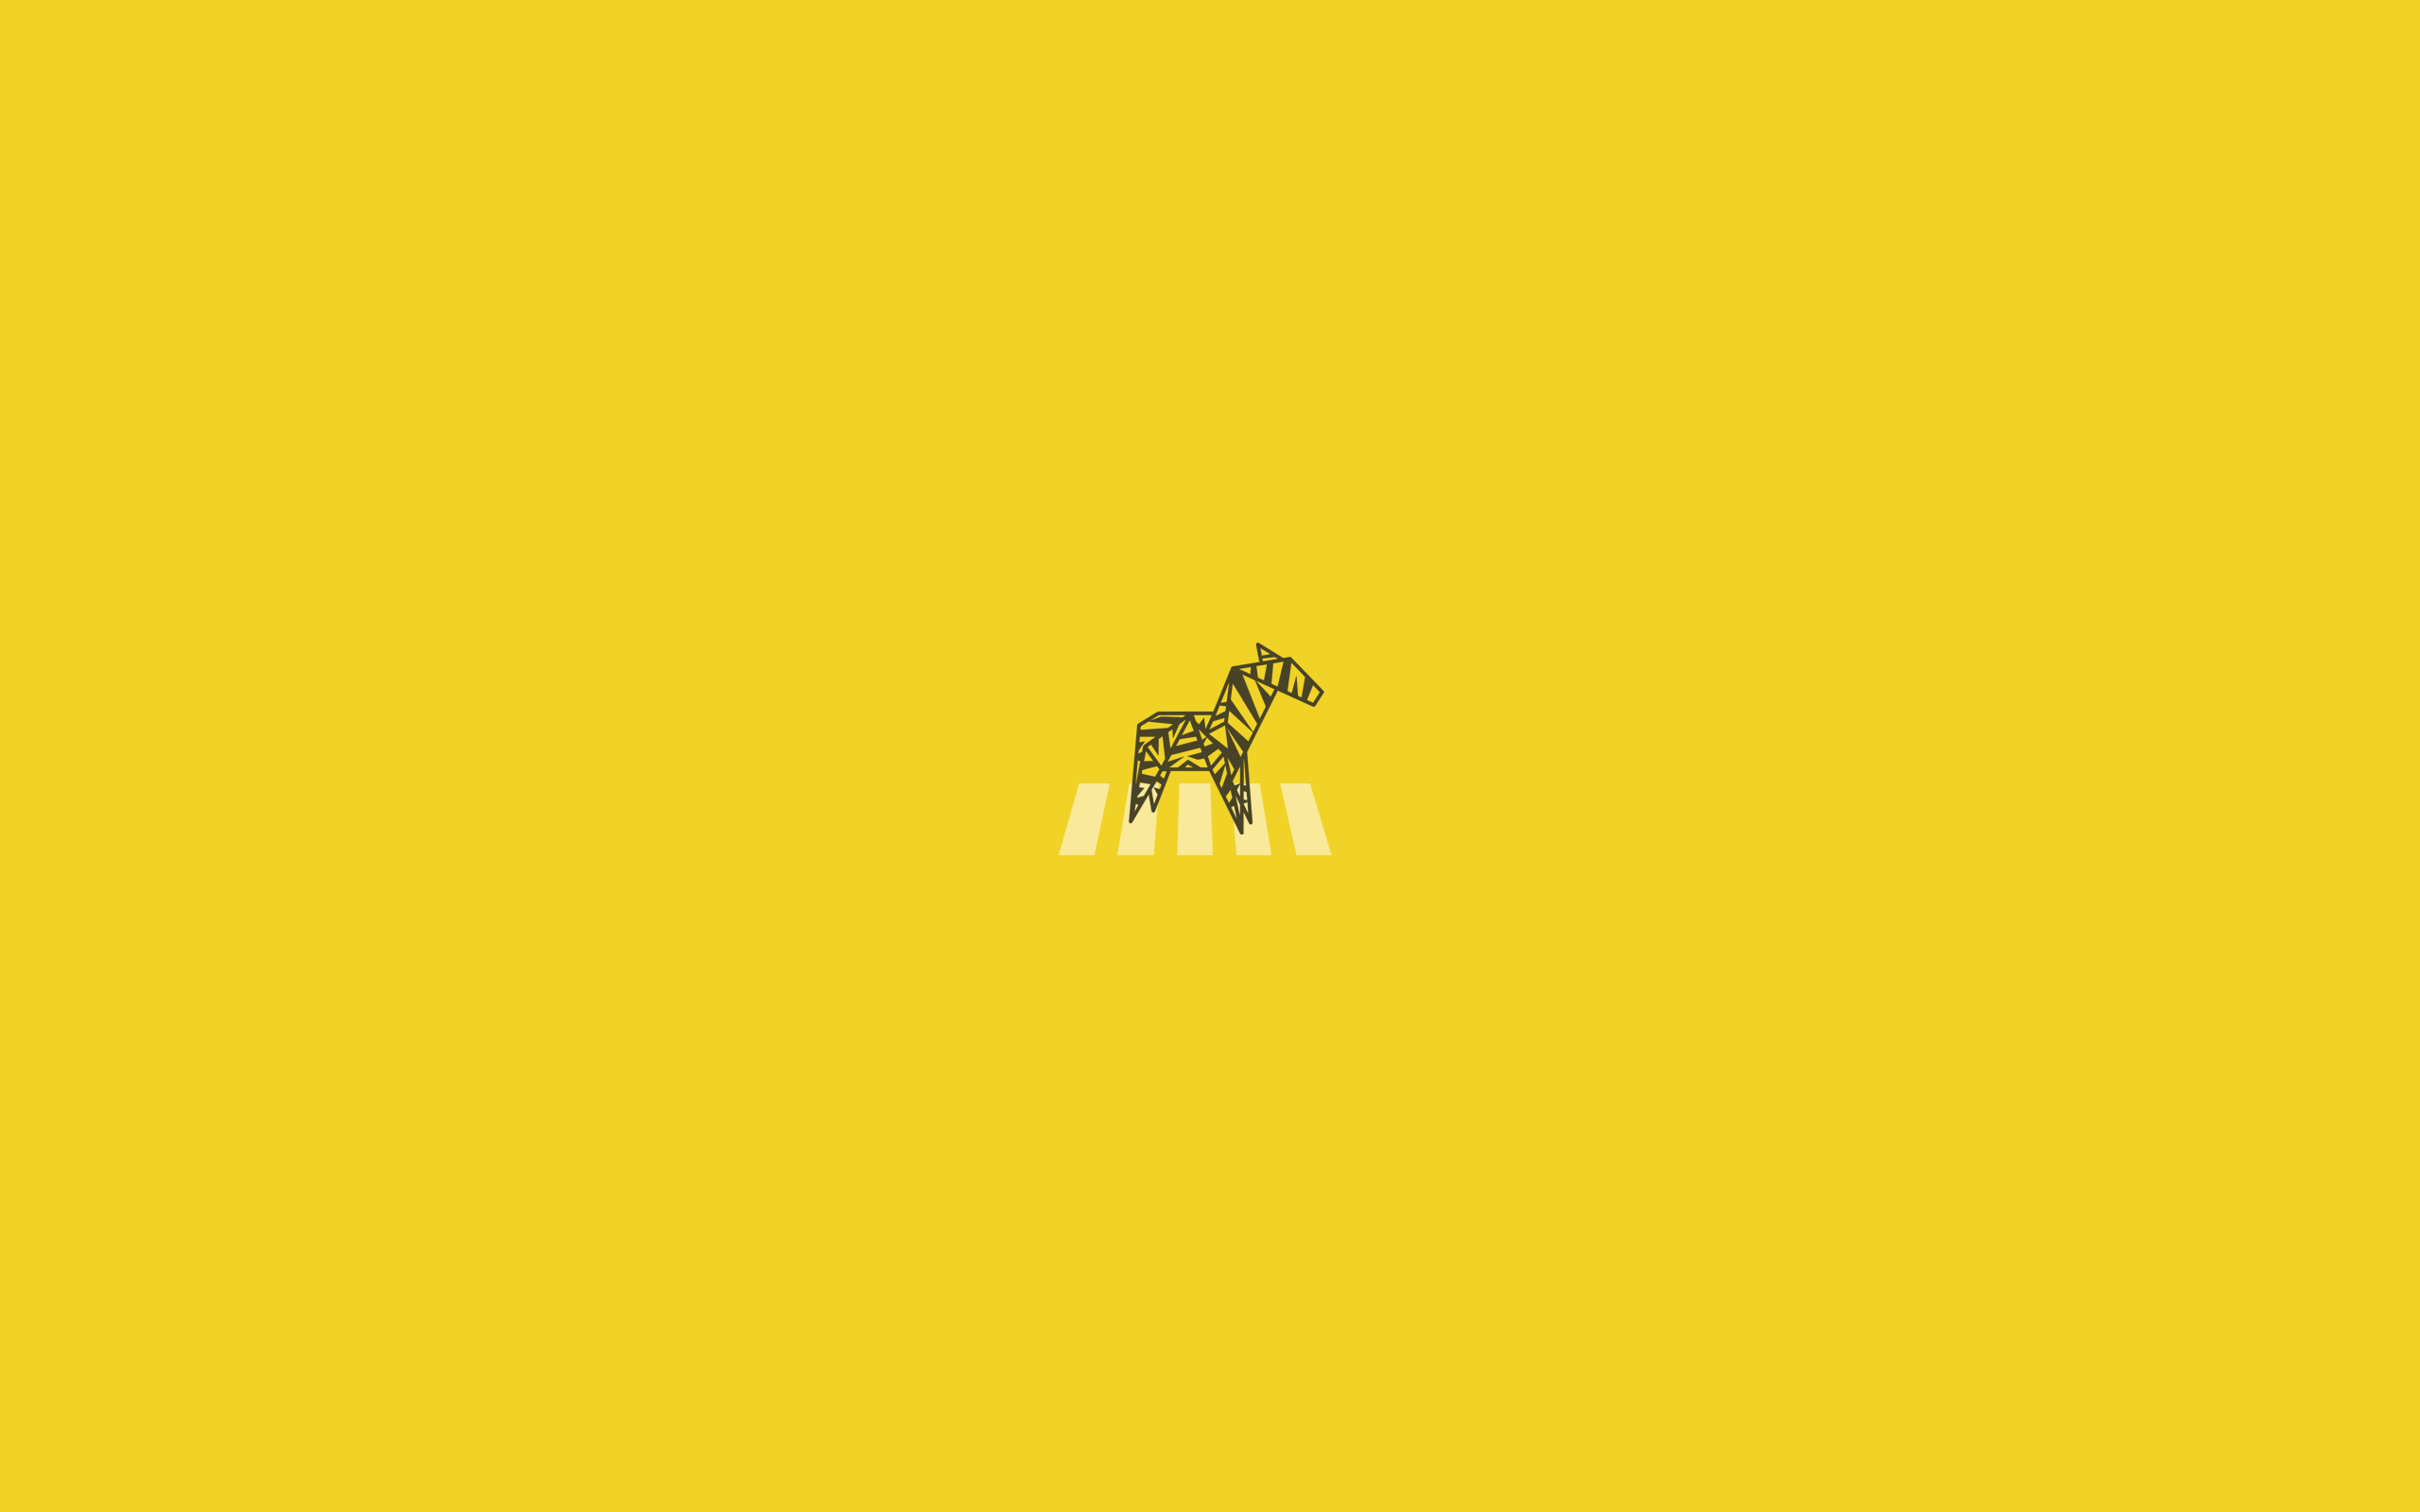 Minimalist Yellow Aesthetic Desktop Wallpaper